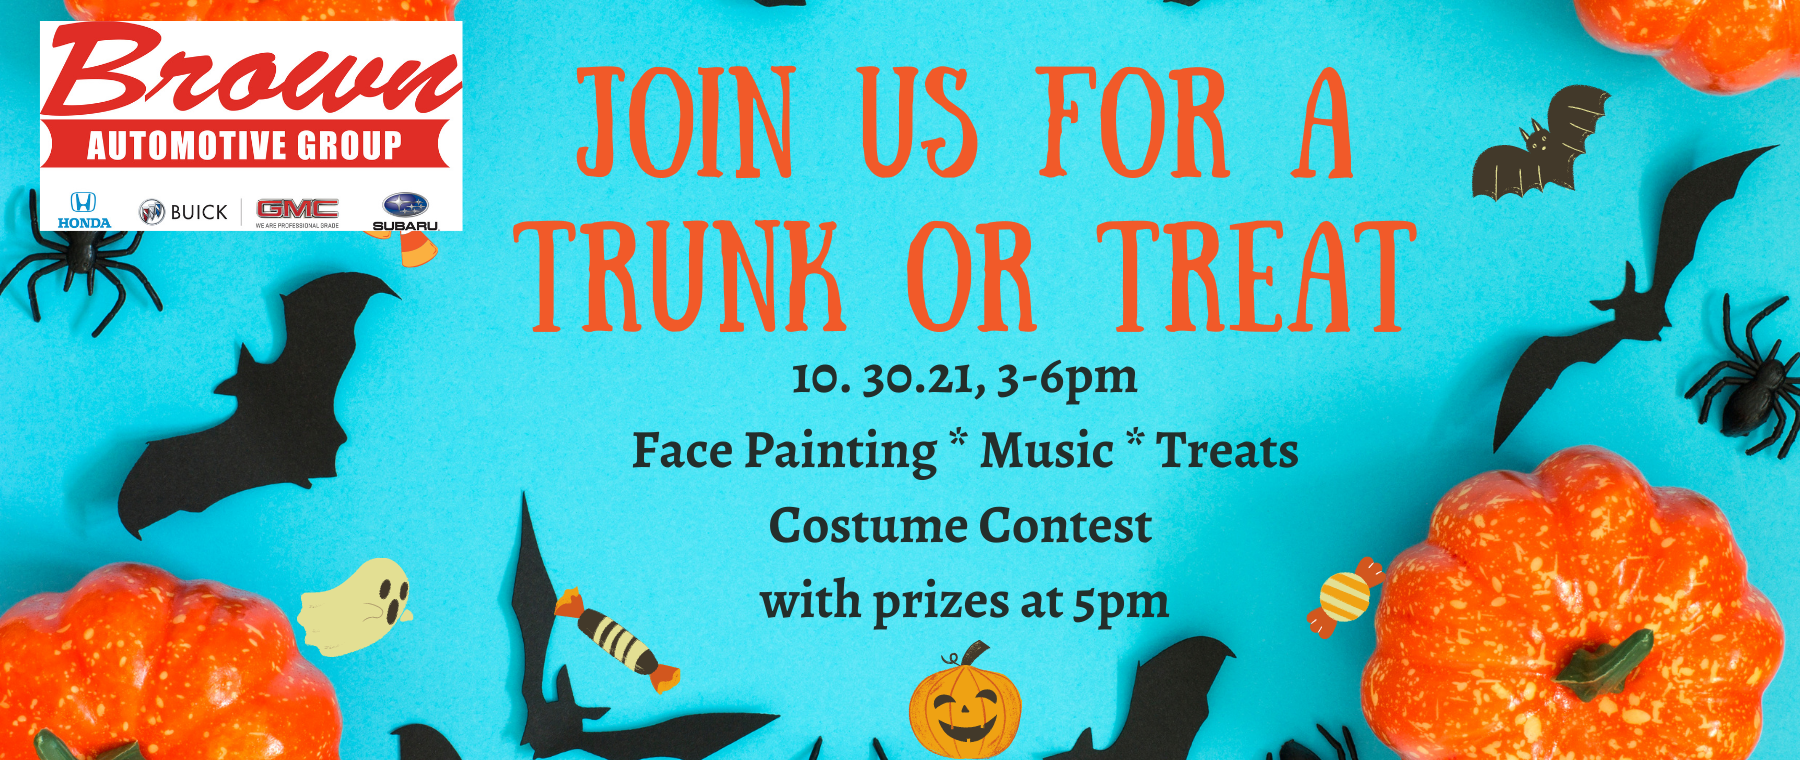 Copy of Trunk or Treat banner (1800 x 760 px)